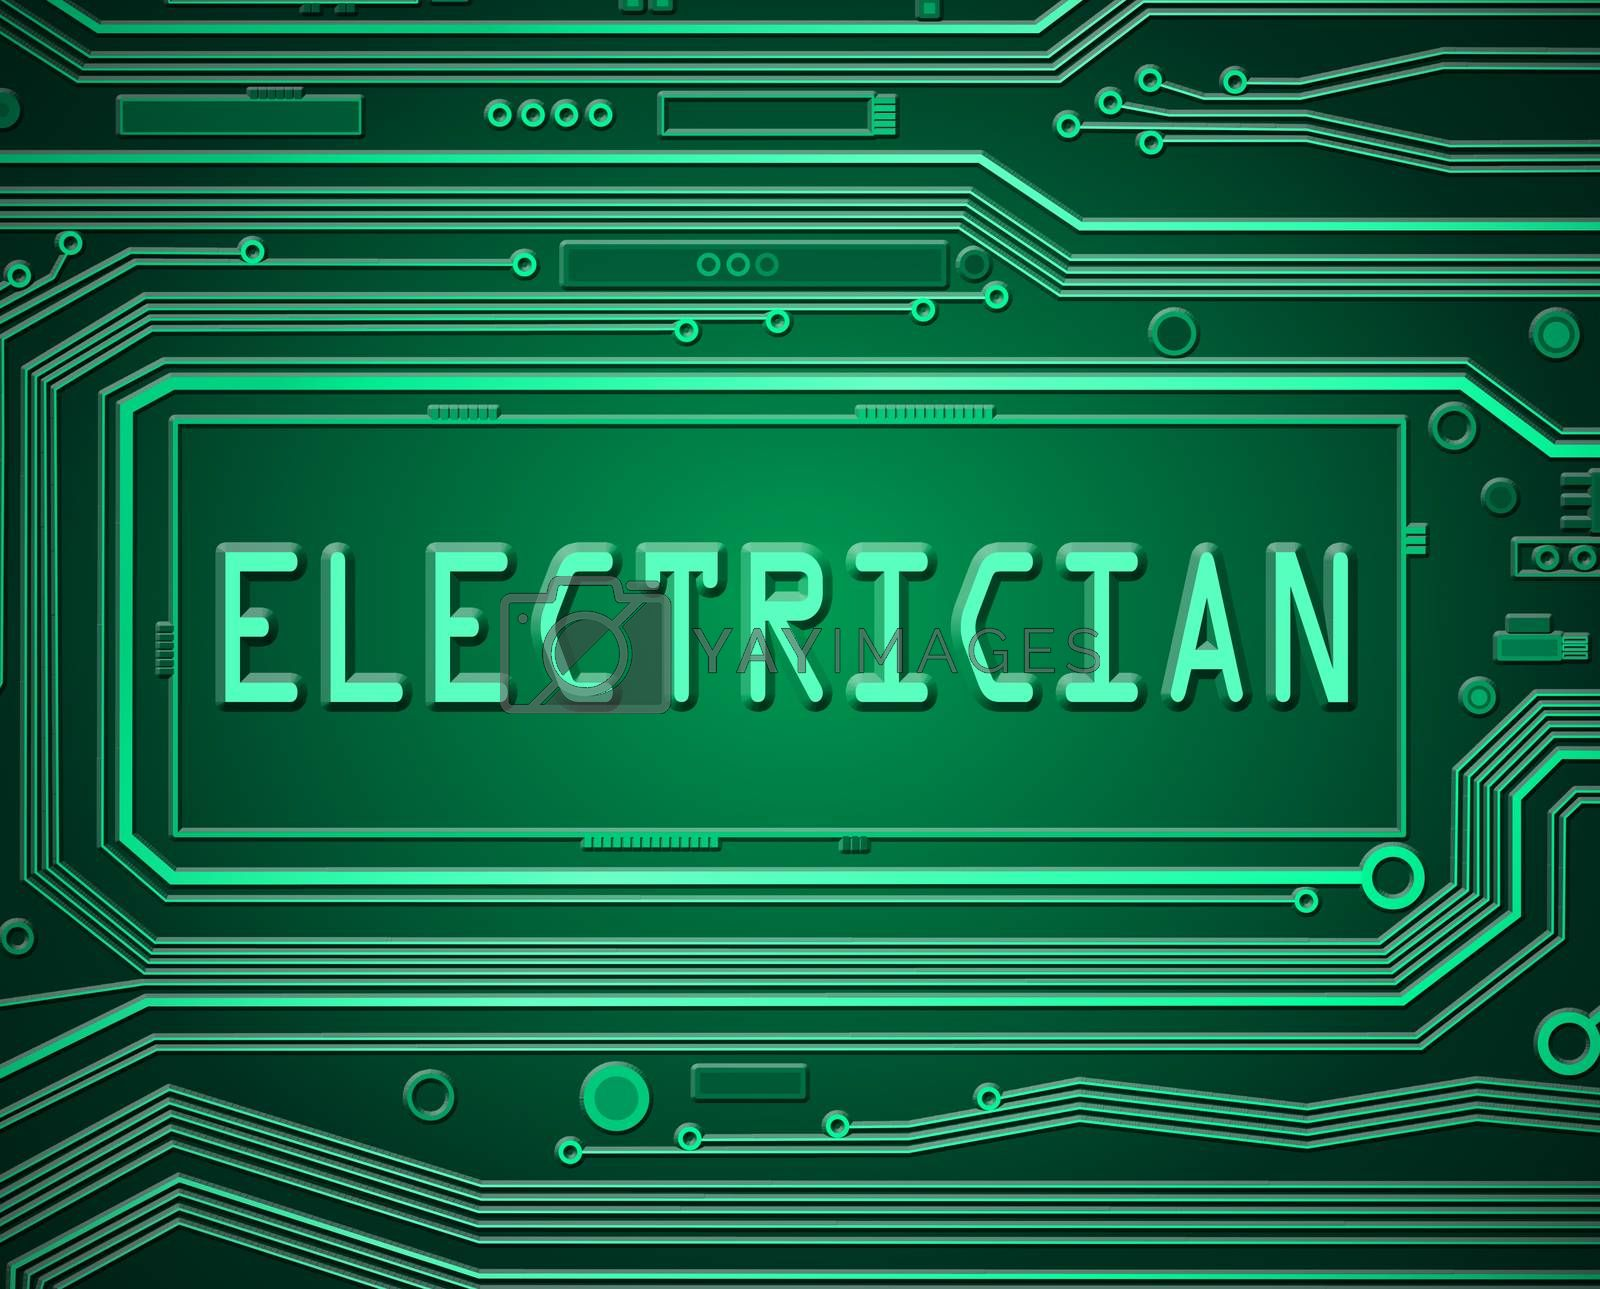 Abstract style illustration depicting printed circuit board components with an electrician concept.